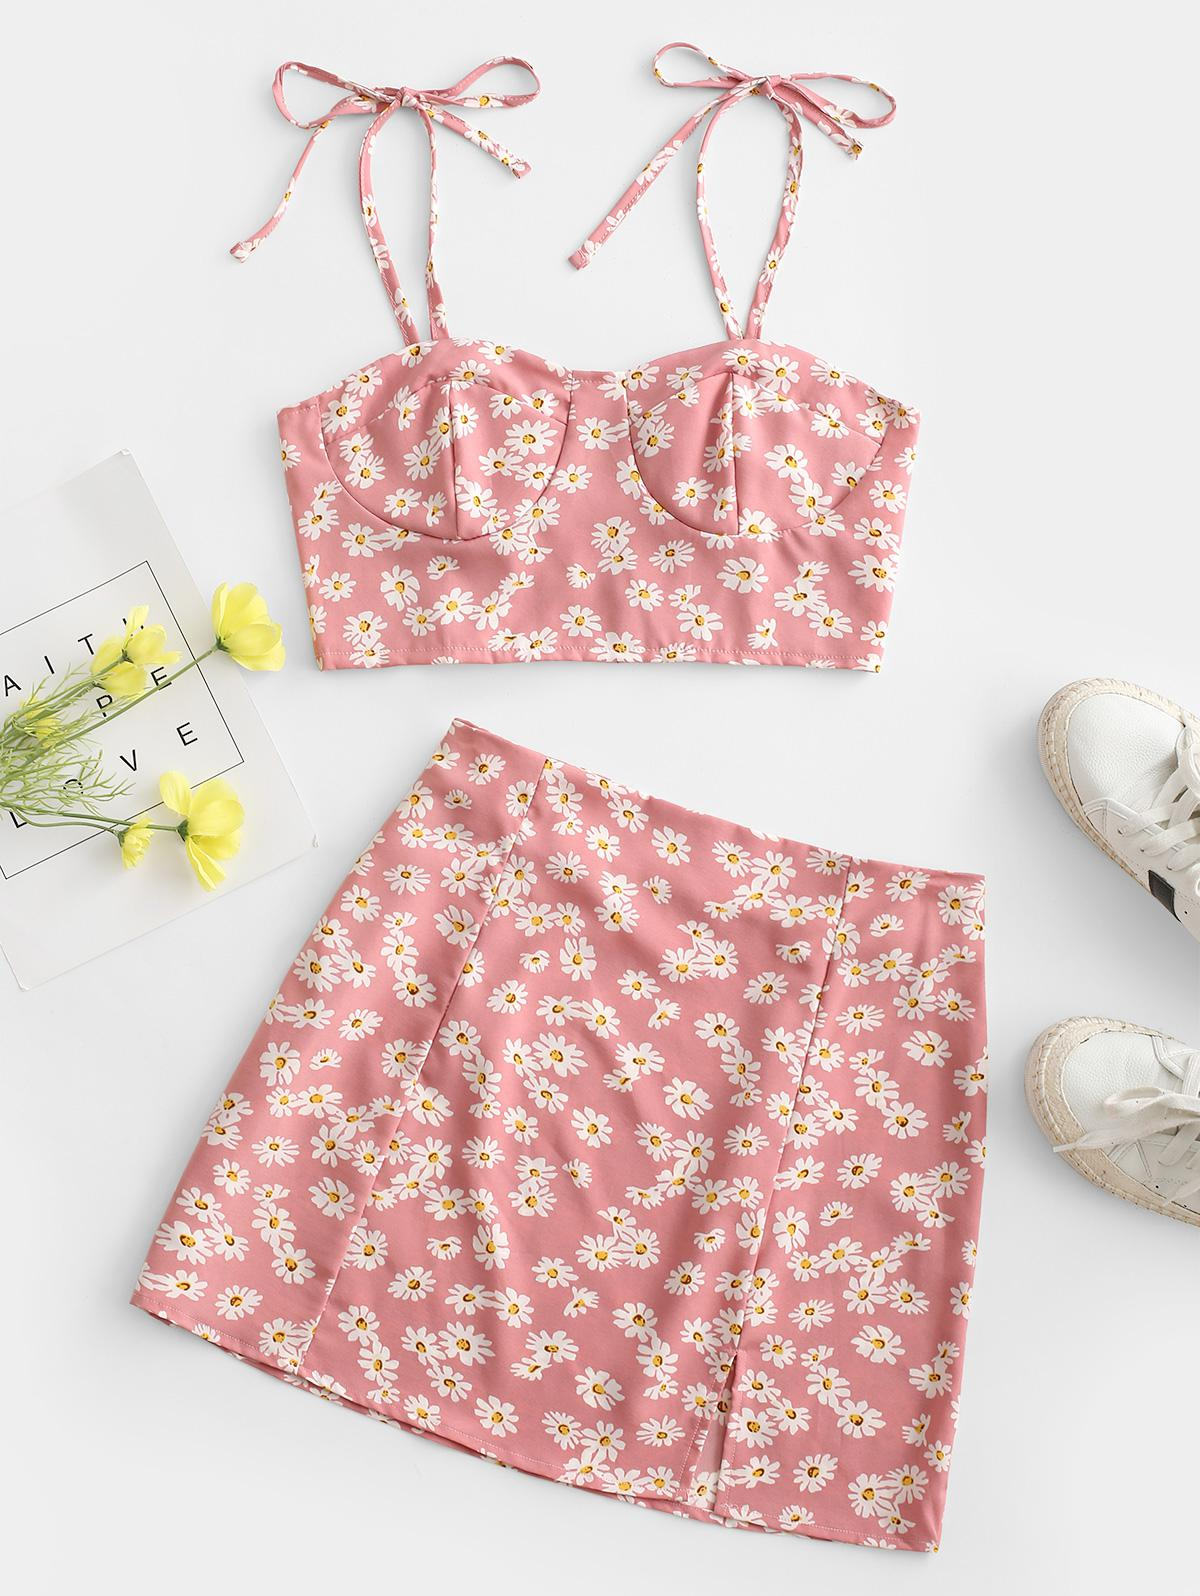 Floral Tie Smocked Bustier Two Piece Dress